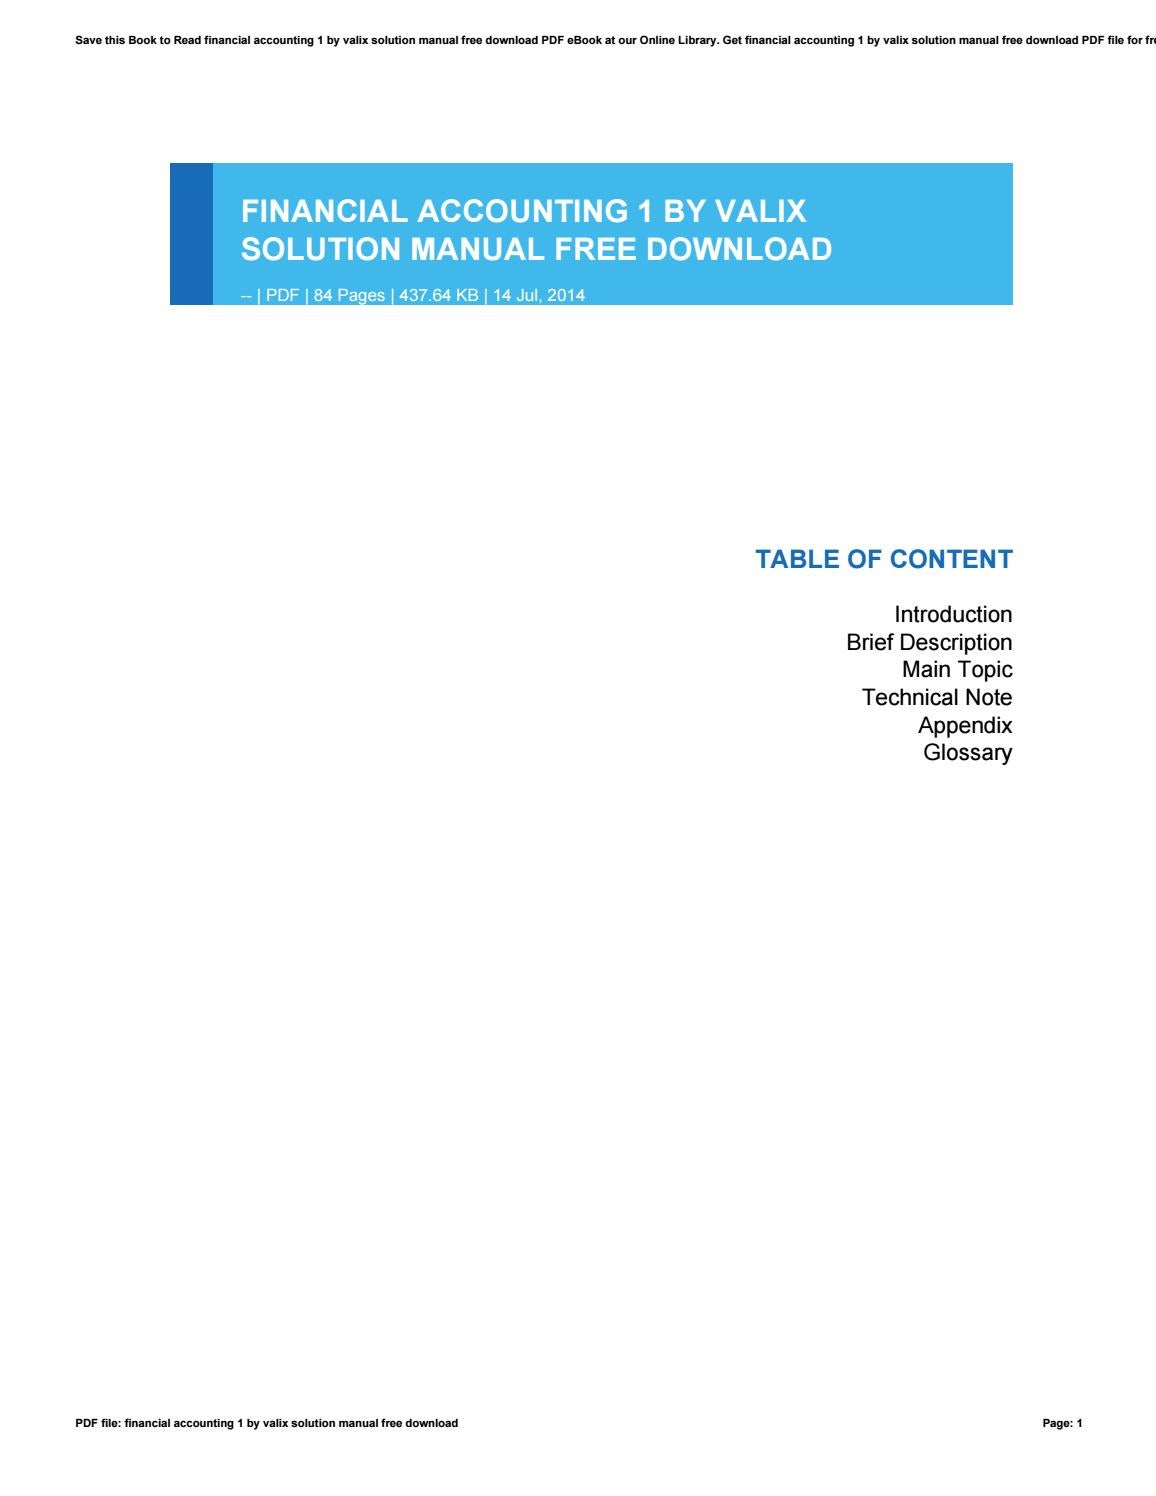 Financial accounting 1 by valix solution manual free download by  pejovideomaker4 - issuu